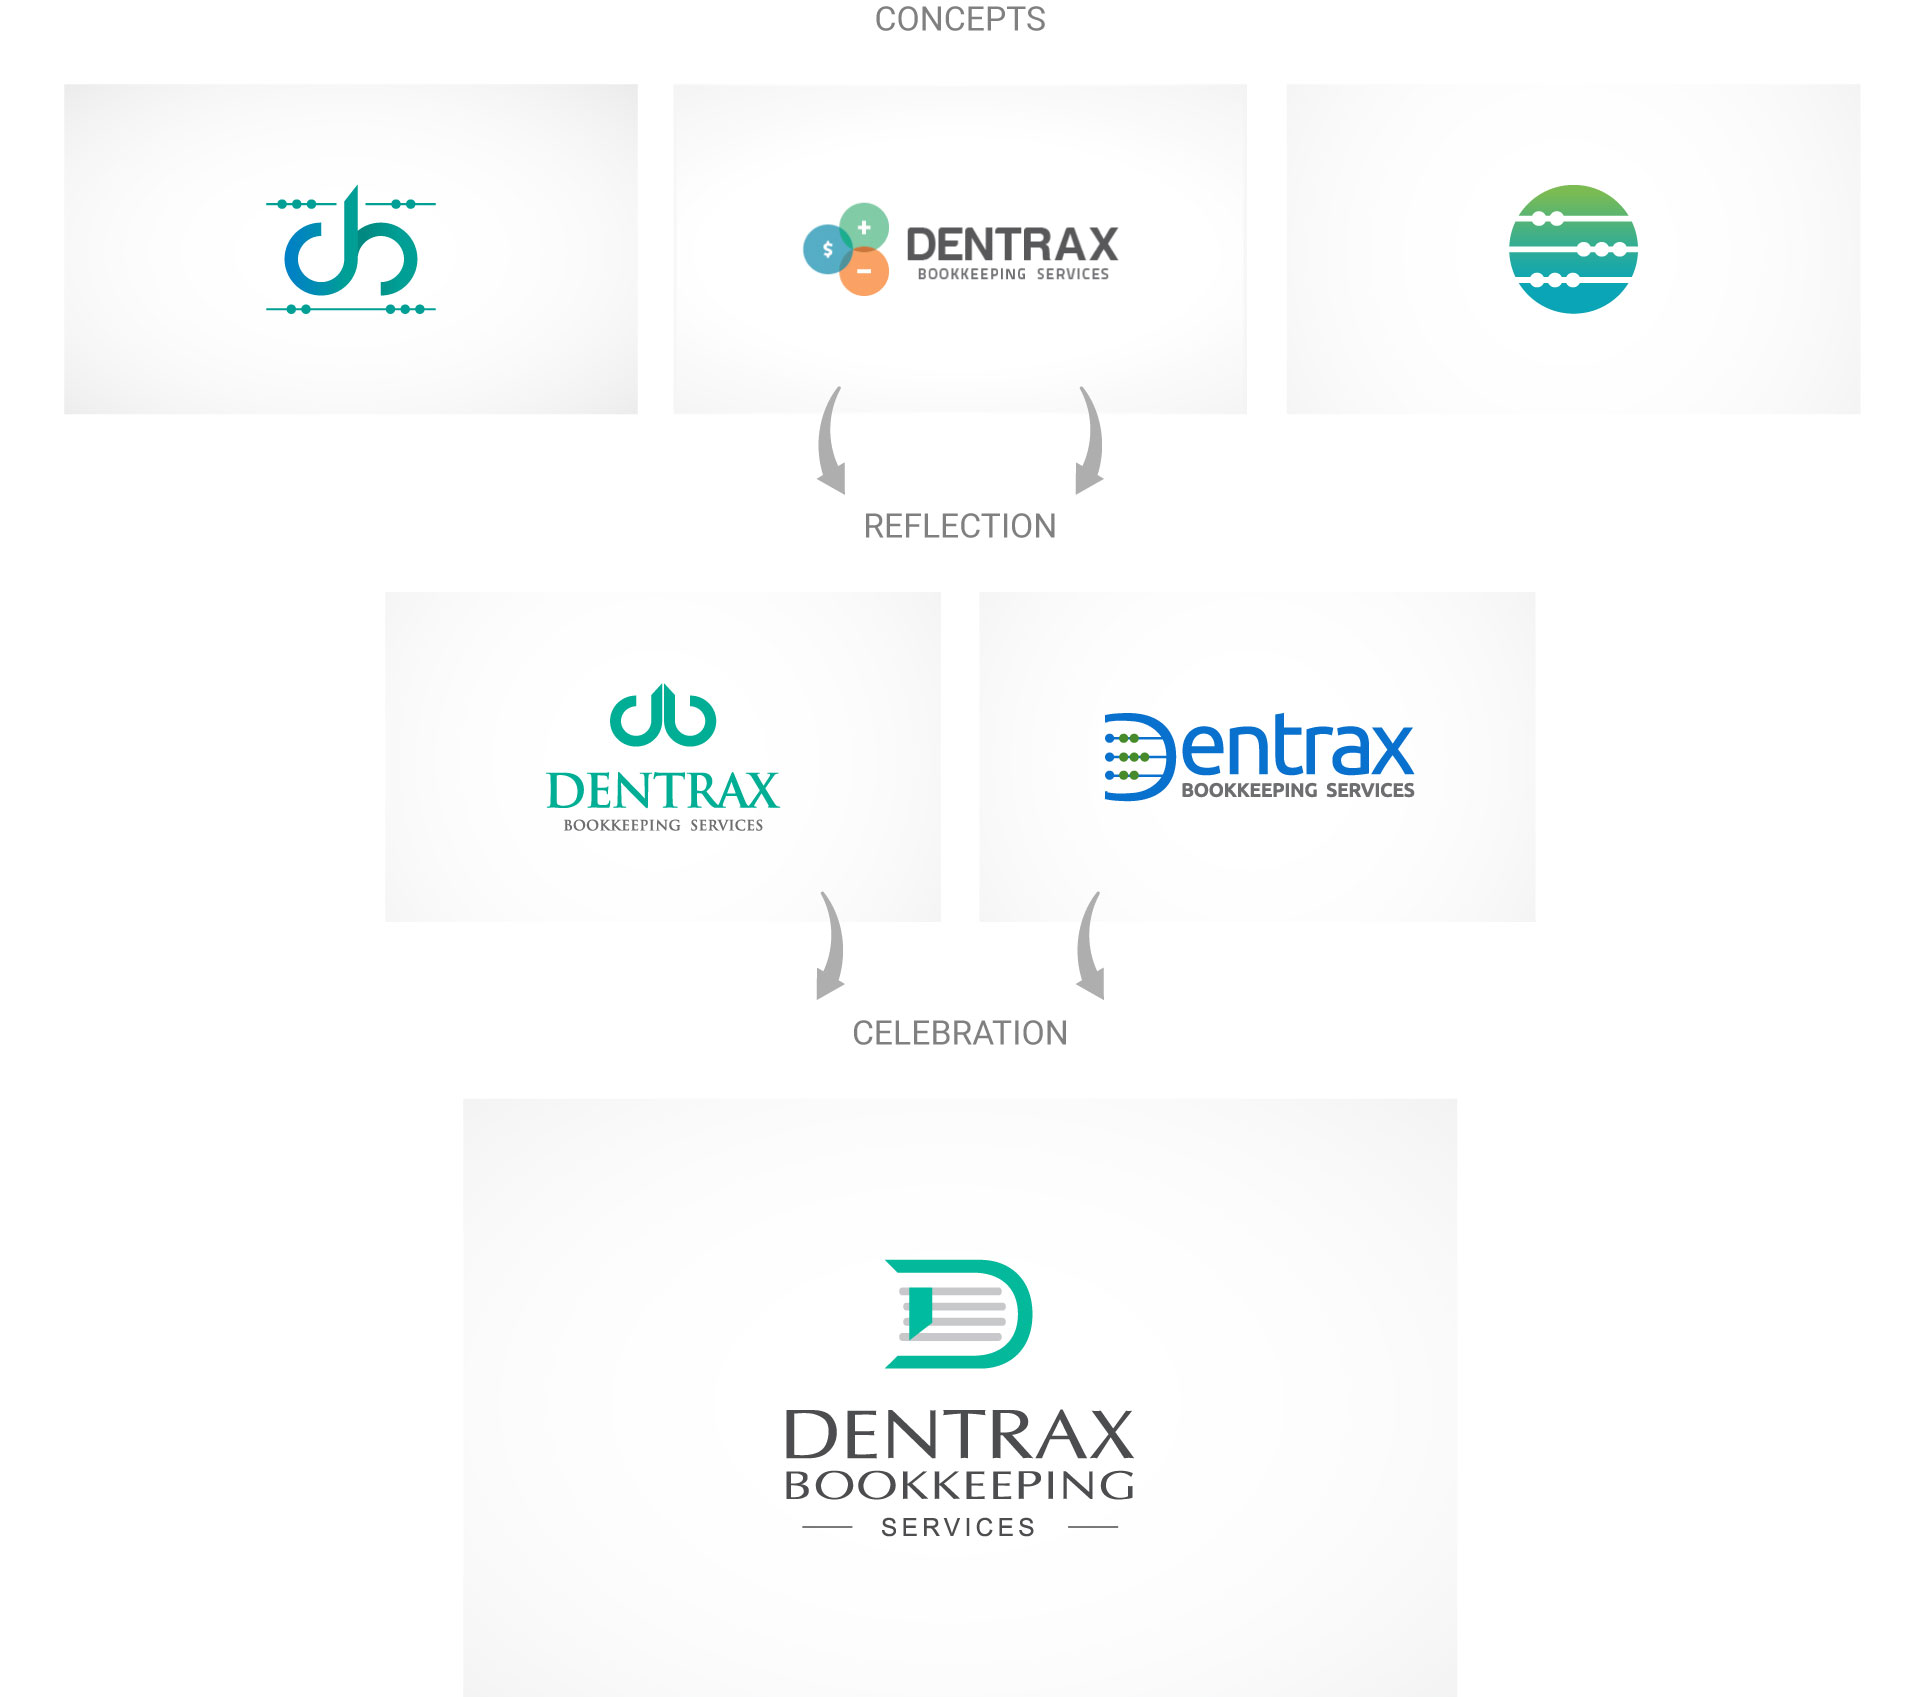 dentraxbookkeeping-logo-design-process-by-mapleweb-vancouver-canada